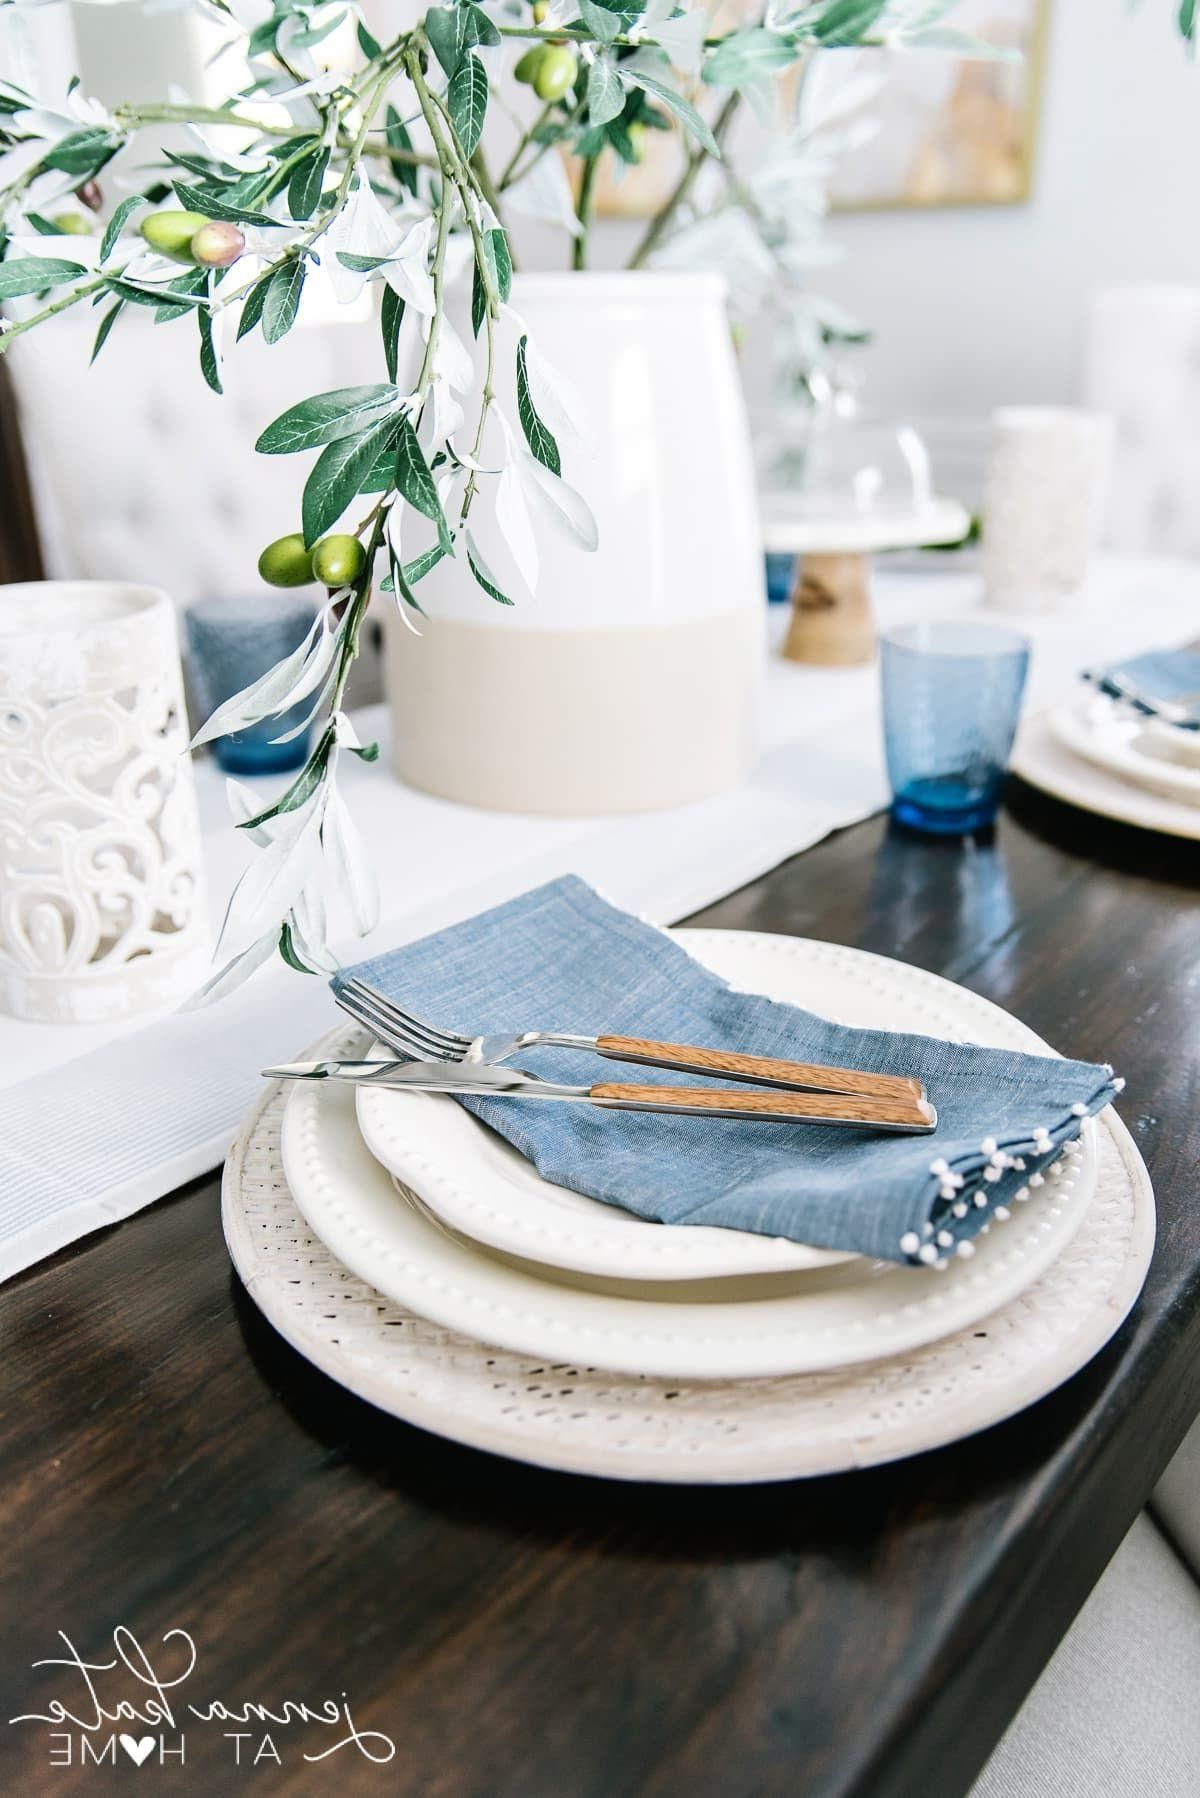 Home Decor Habitacion Pretty every day tablescape for spring or summer with shades of blue and white. #tablescape #tablesetting #summerdecor #jennakateathome.Home Decor Habitacion  Pretty every day tablescape for spring or summer with shades of blue and white. #tablescape #tablesetting #summerdecor #jennakateathome